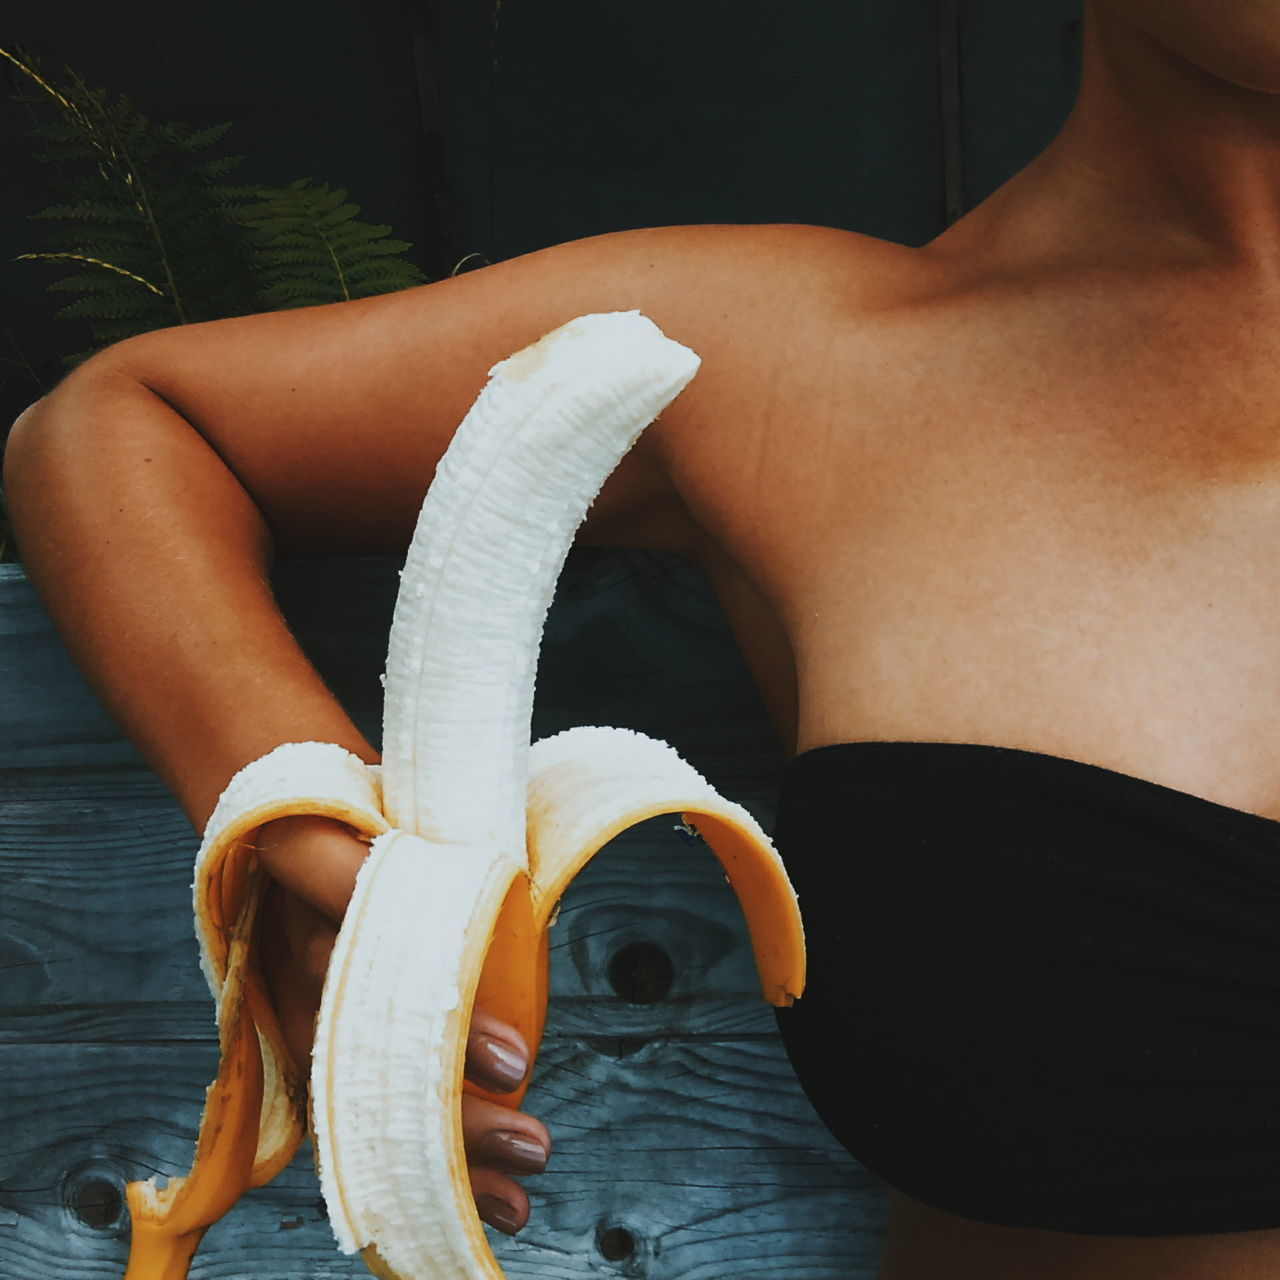 Summertime Summer Girl Tumblrgirl Babygirl Banana Taking Photos Hanging Out That's Me Followme Enjoying Life Photographer Minimalism Check This Out